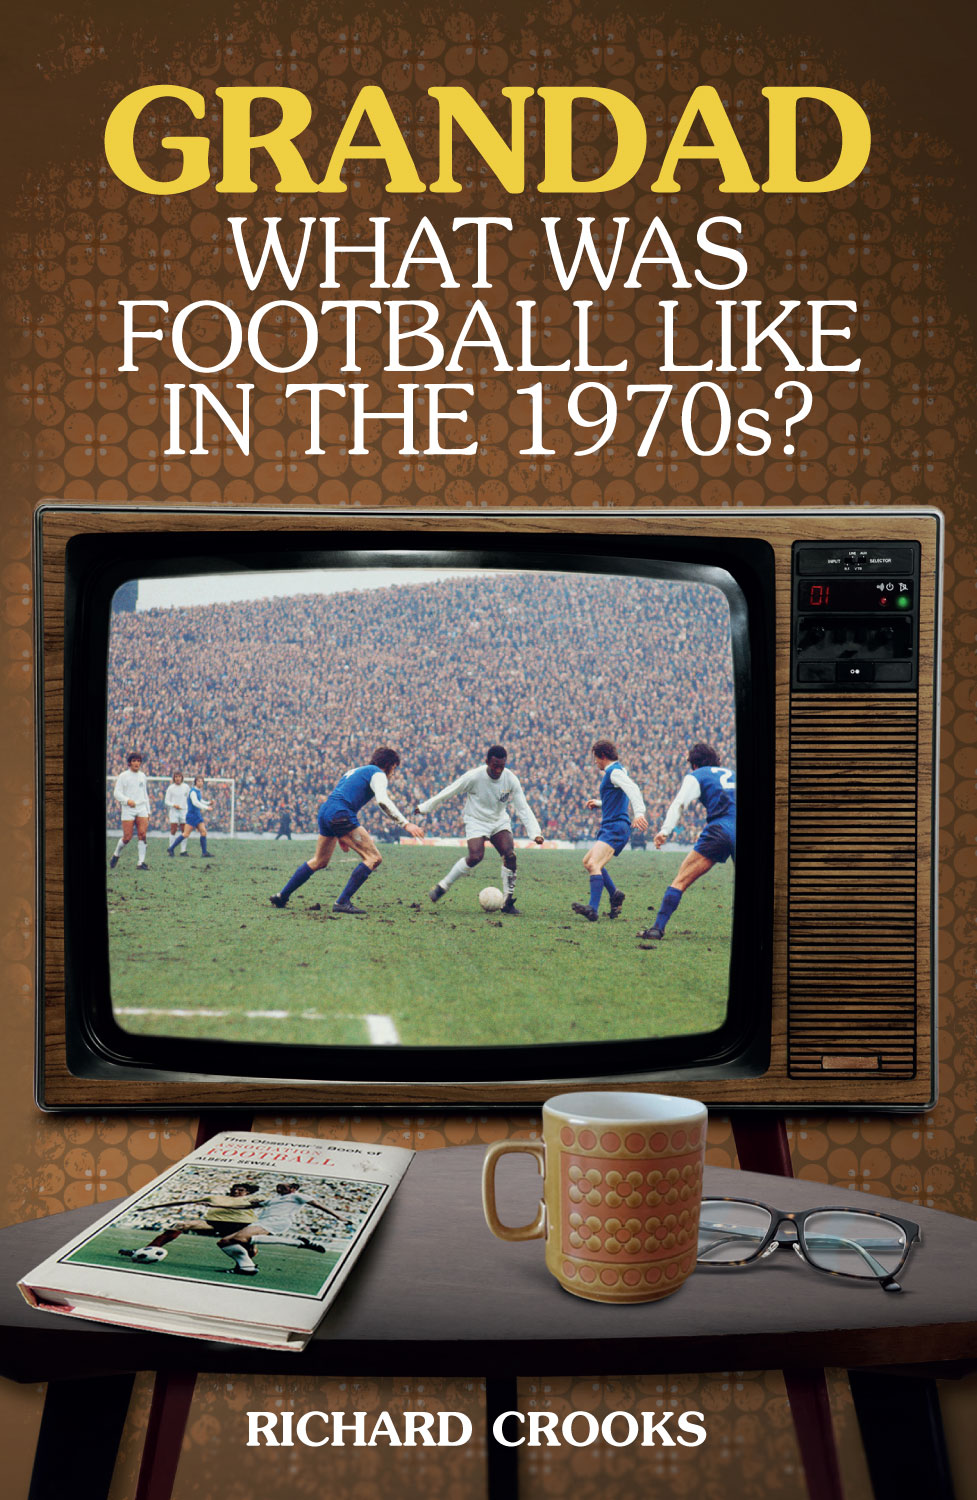 Grandad, What Was Football Like in the 1970s? cover